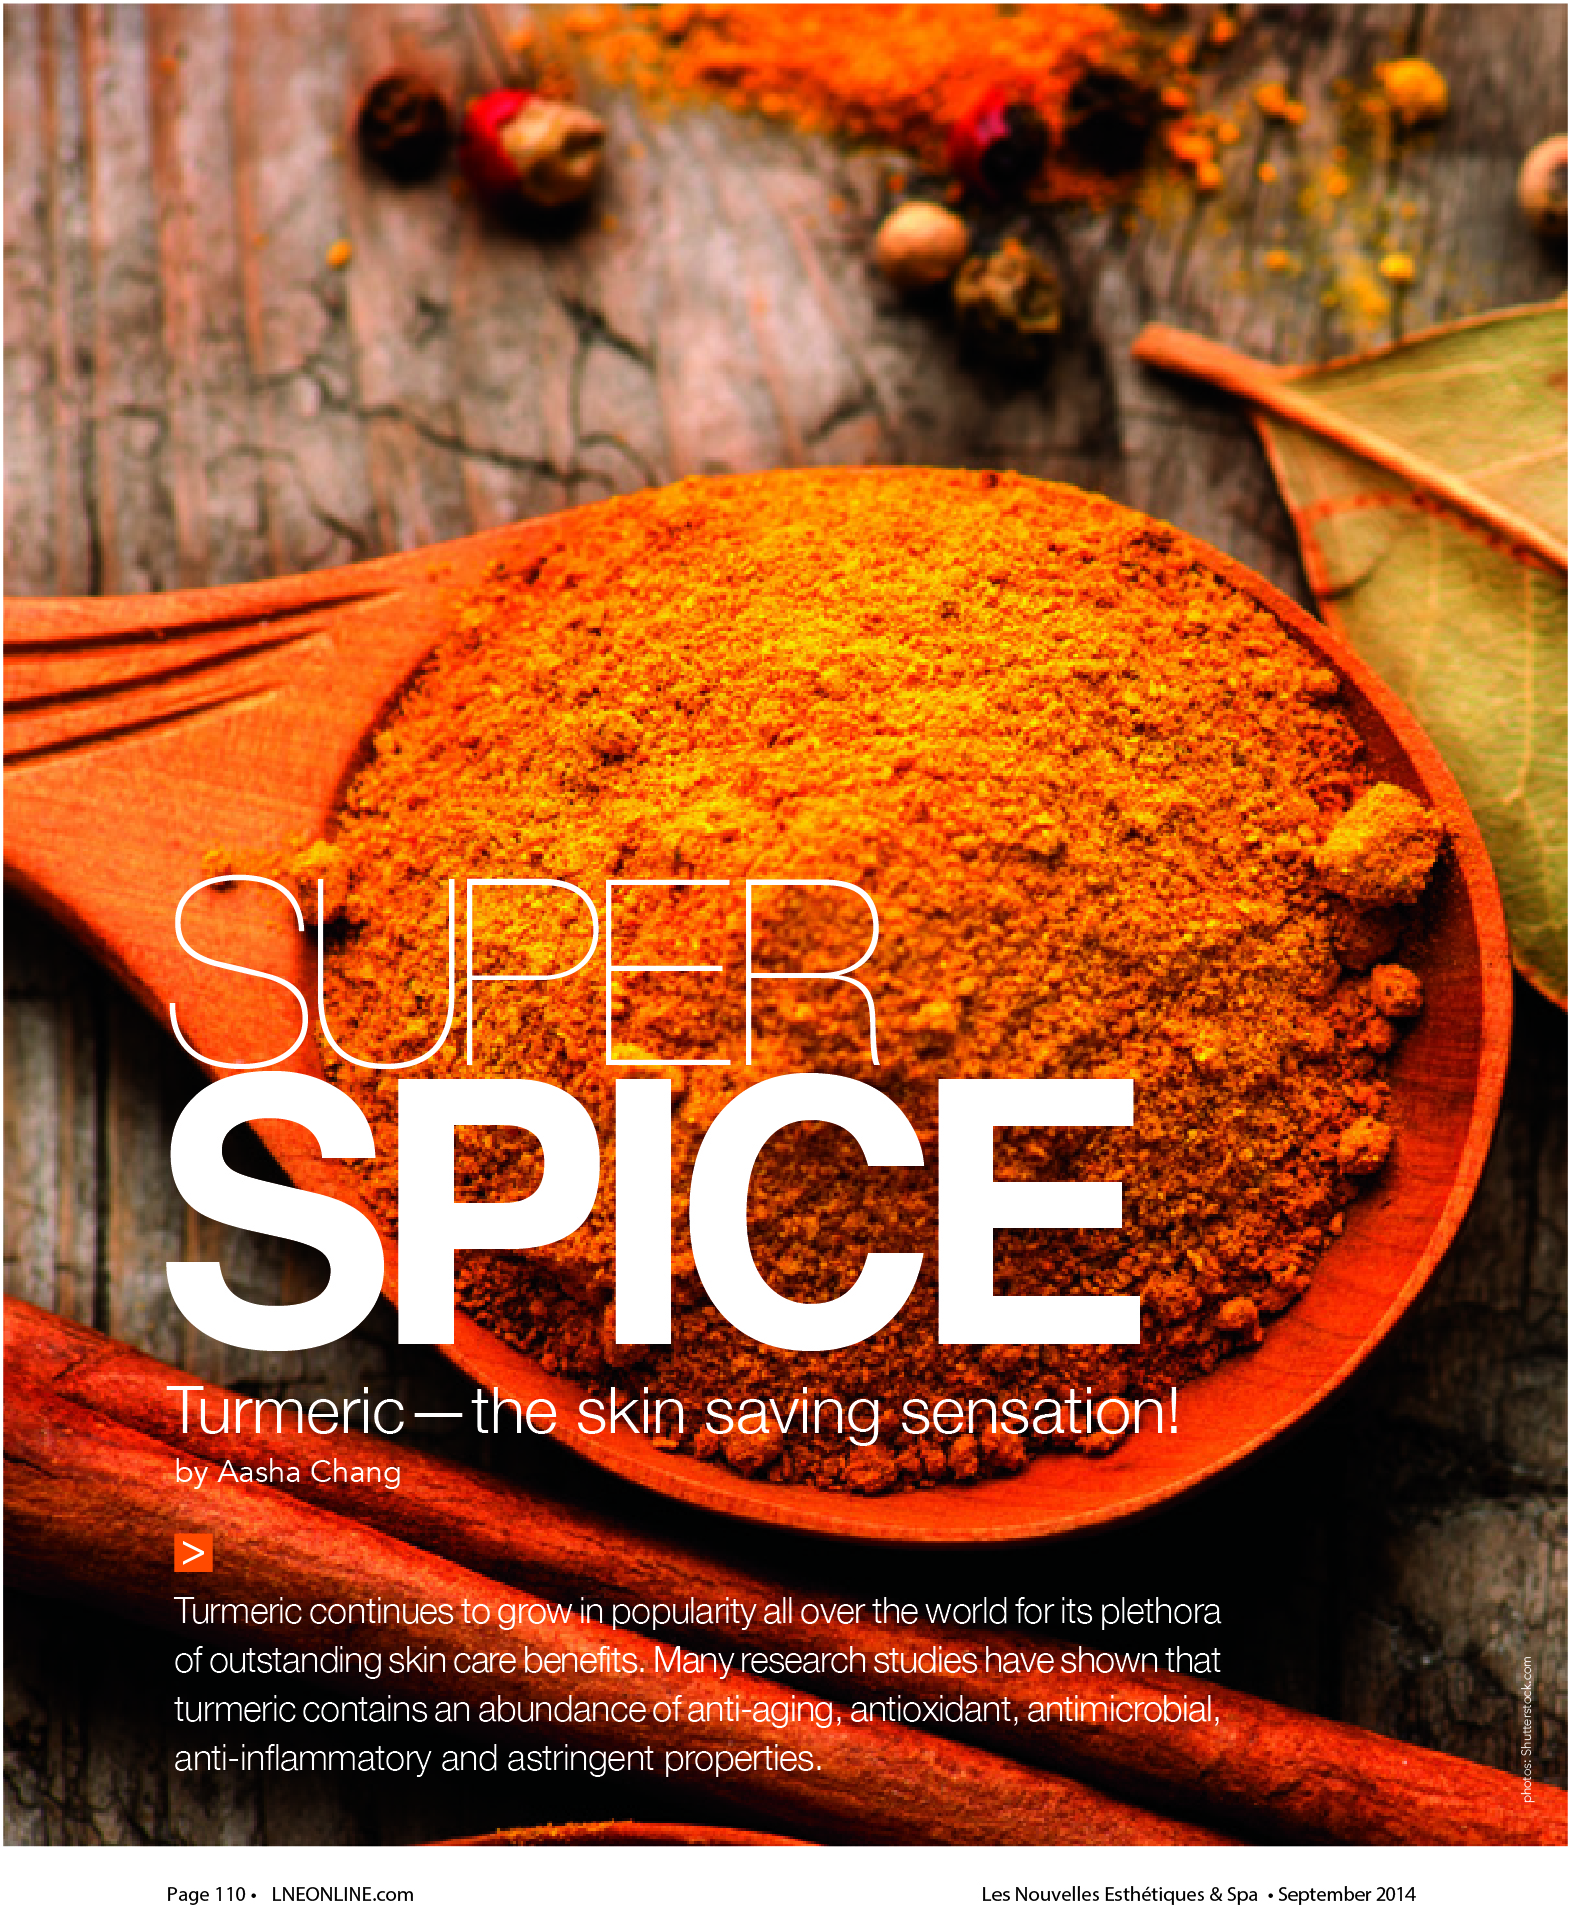 super-spice-turmeric-article-silk-and-stone.jpg